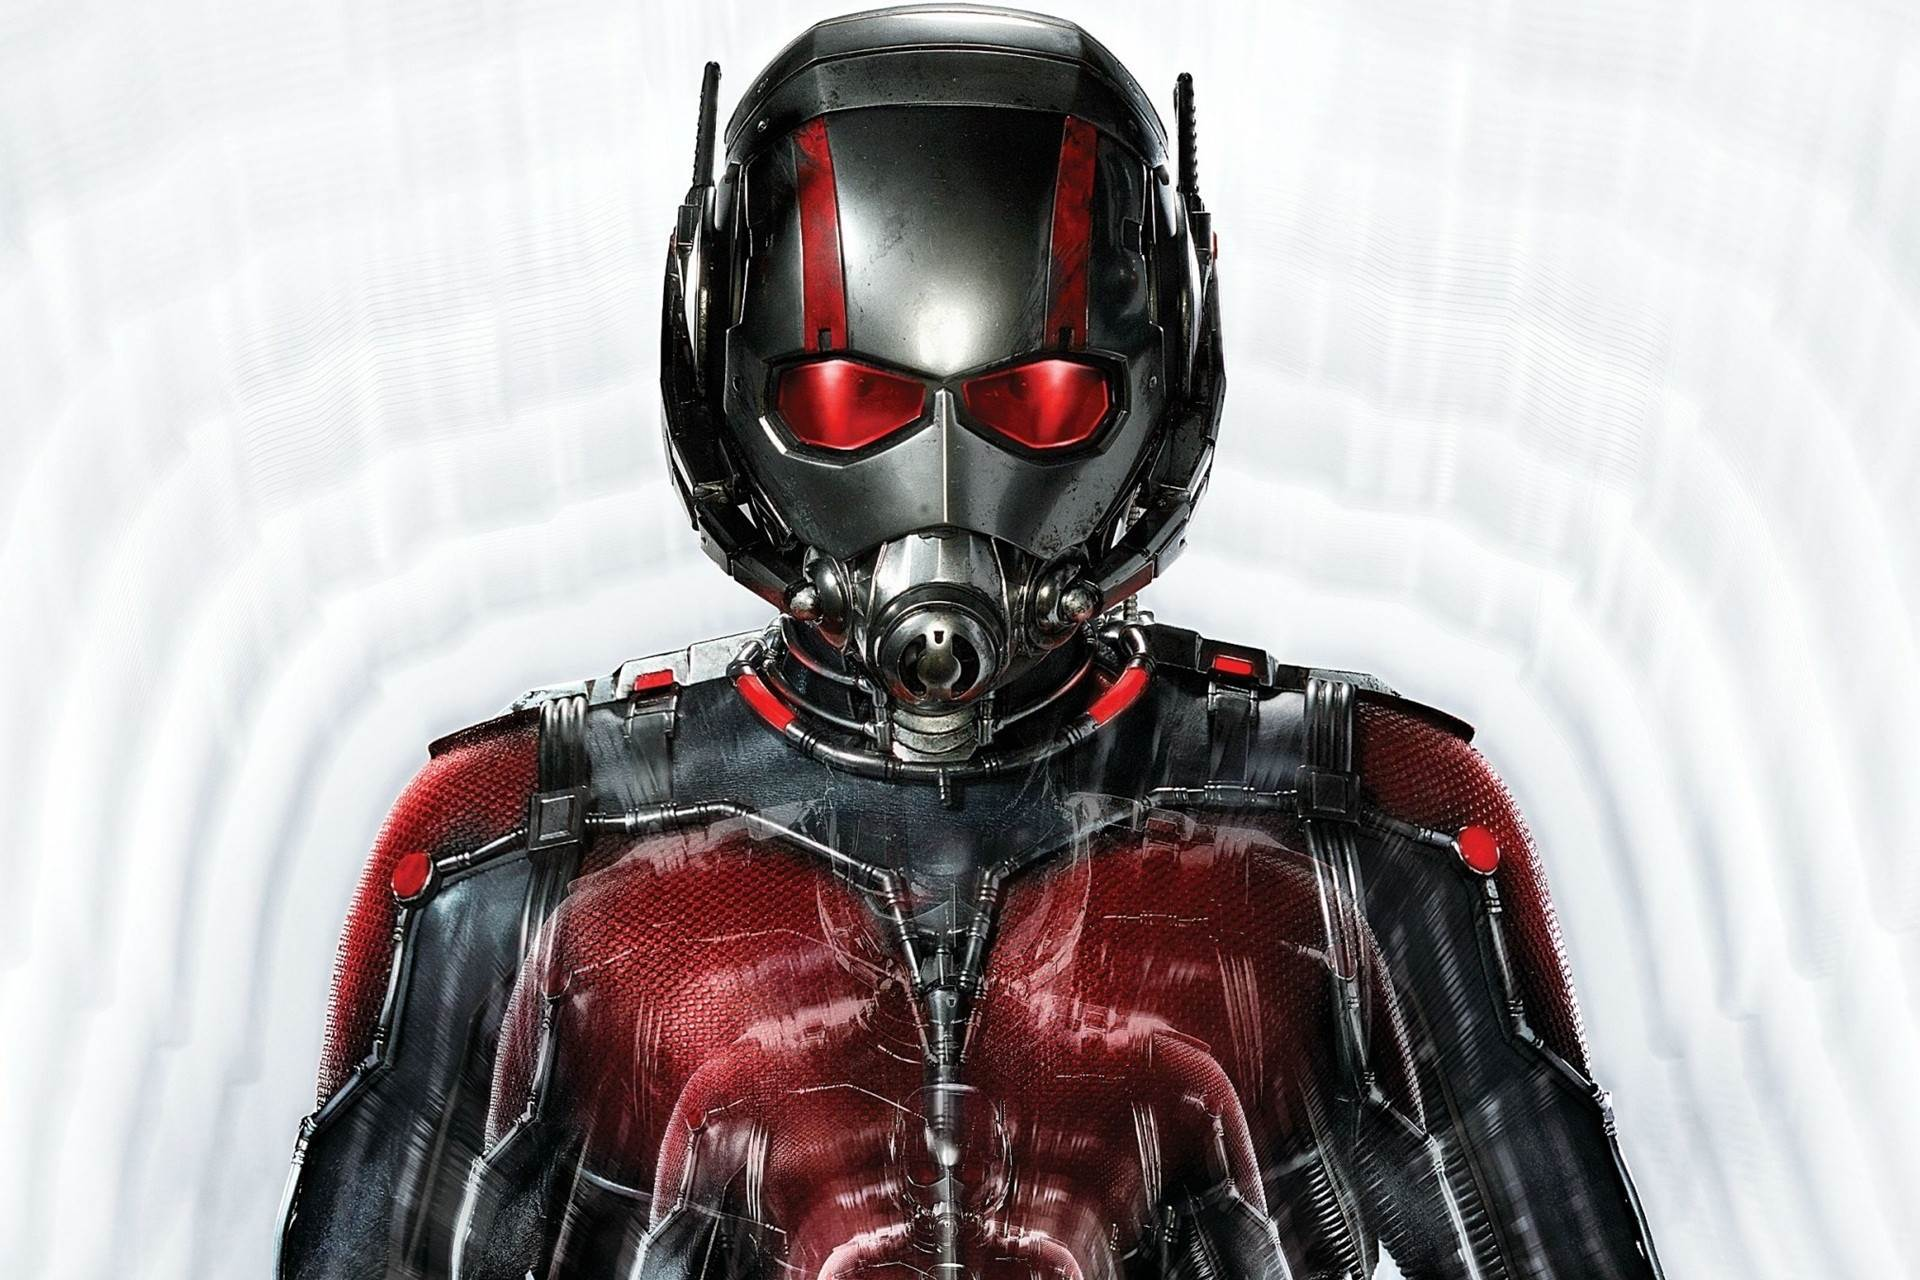 AntMan Computer Wallpapers, Desktop Backgrounds  ID 1920x1280